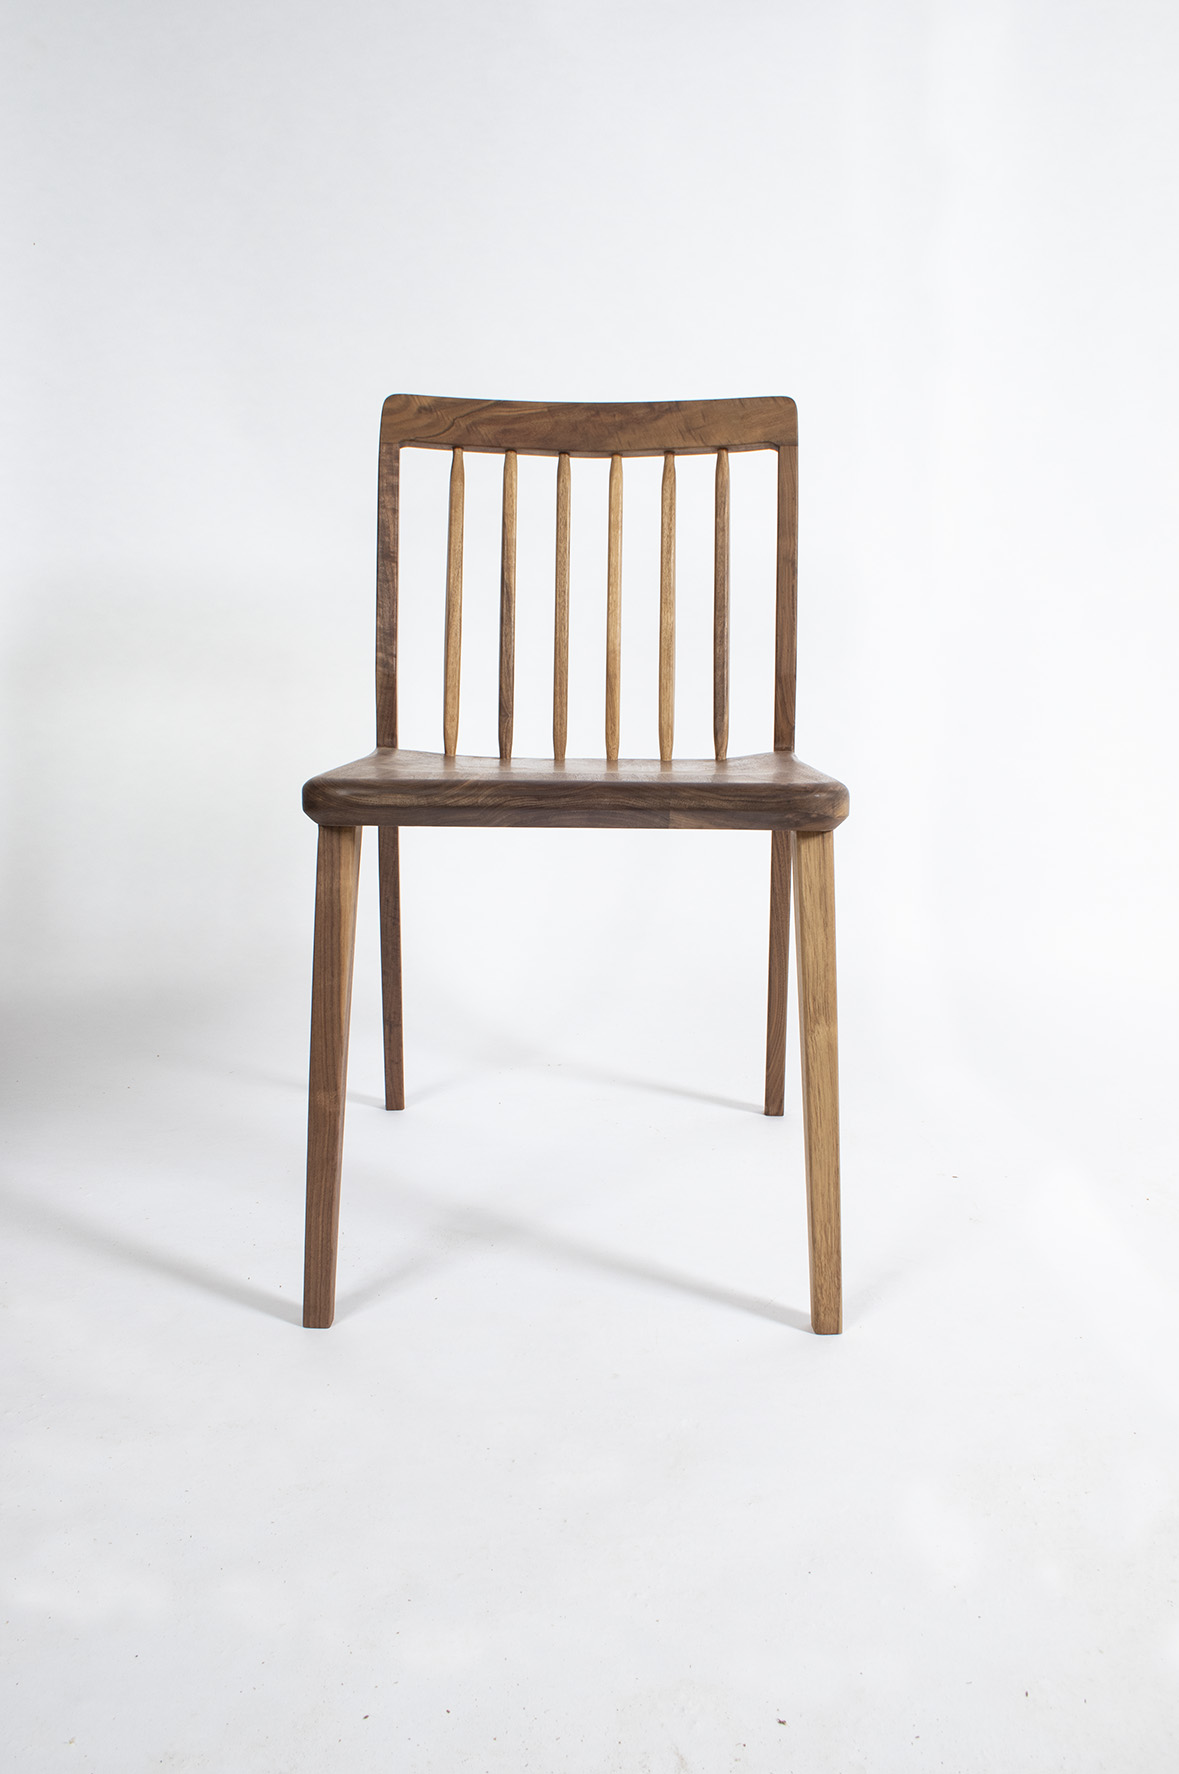 furniture maker bristol, bespoke furniture, built in furniture bristol, walnut chair, dining chair